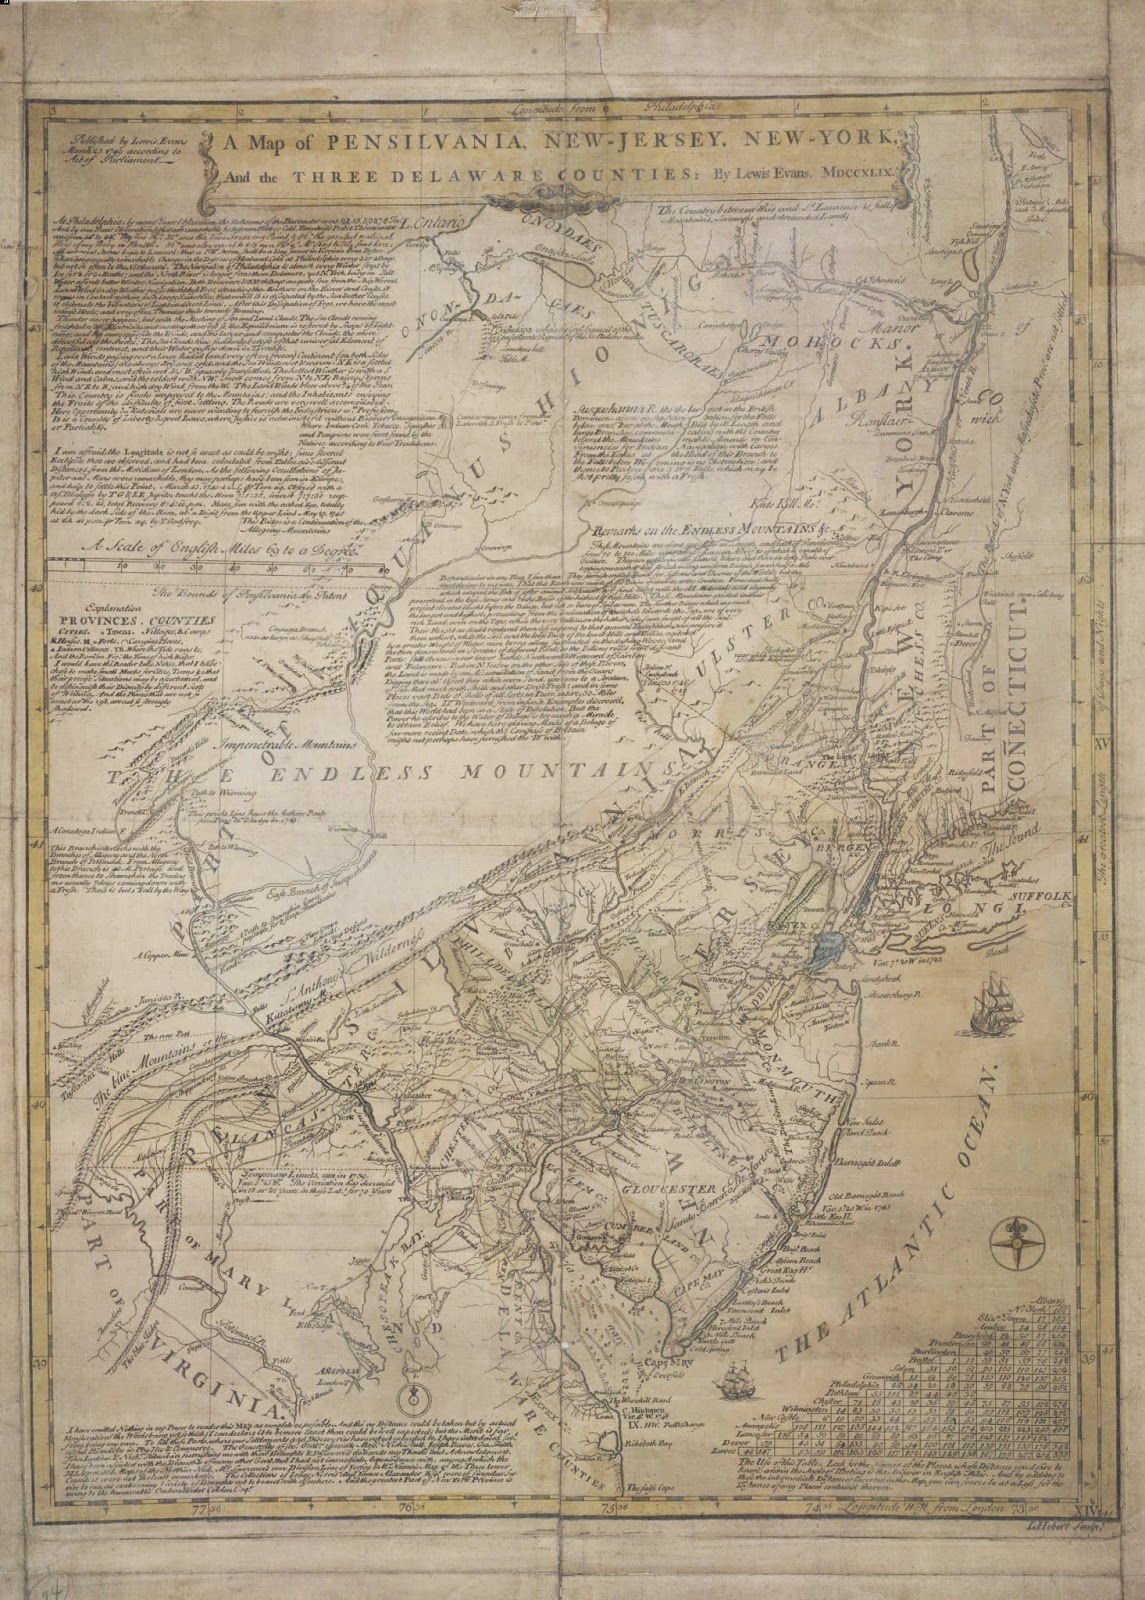 of north america 1776 notes evans 1749 map as printed at philadelphia 1749 distance table ms note 18212 prime meridian london philadelphia